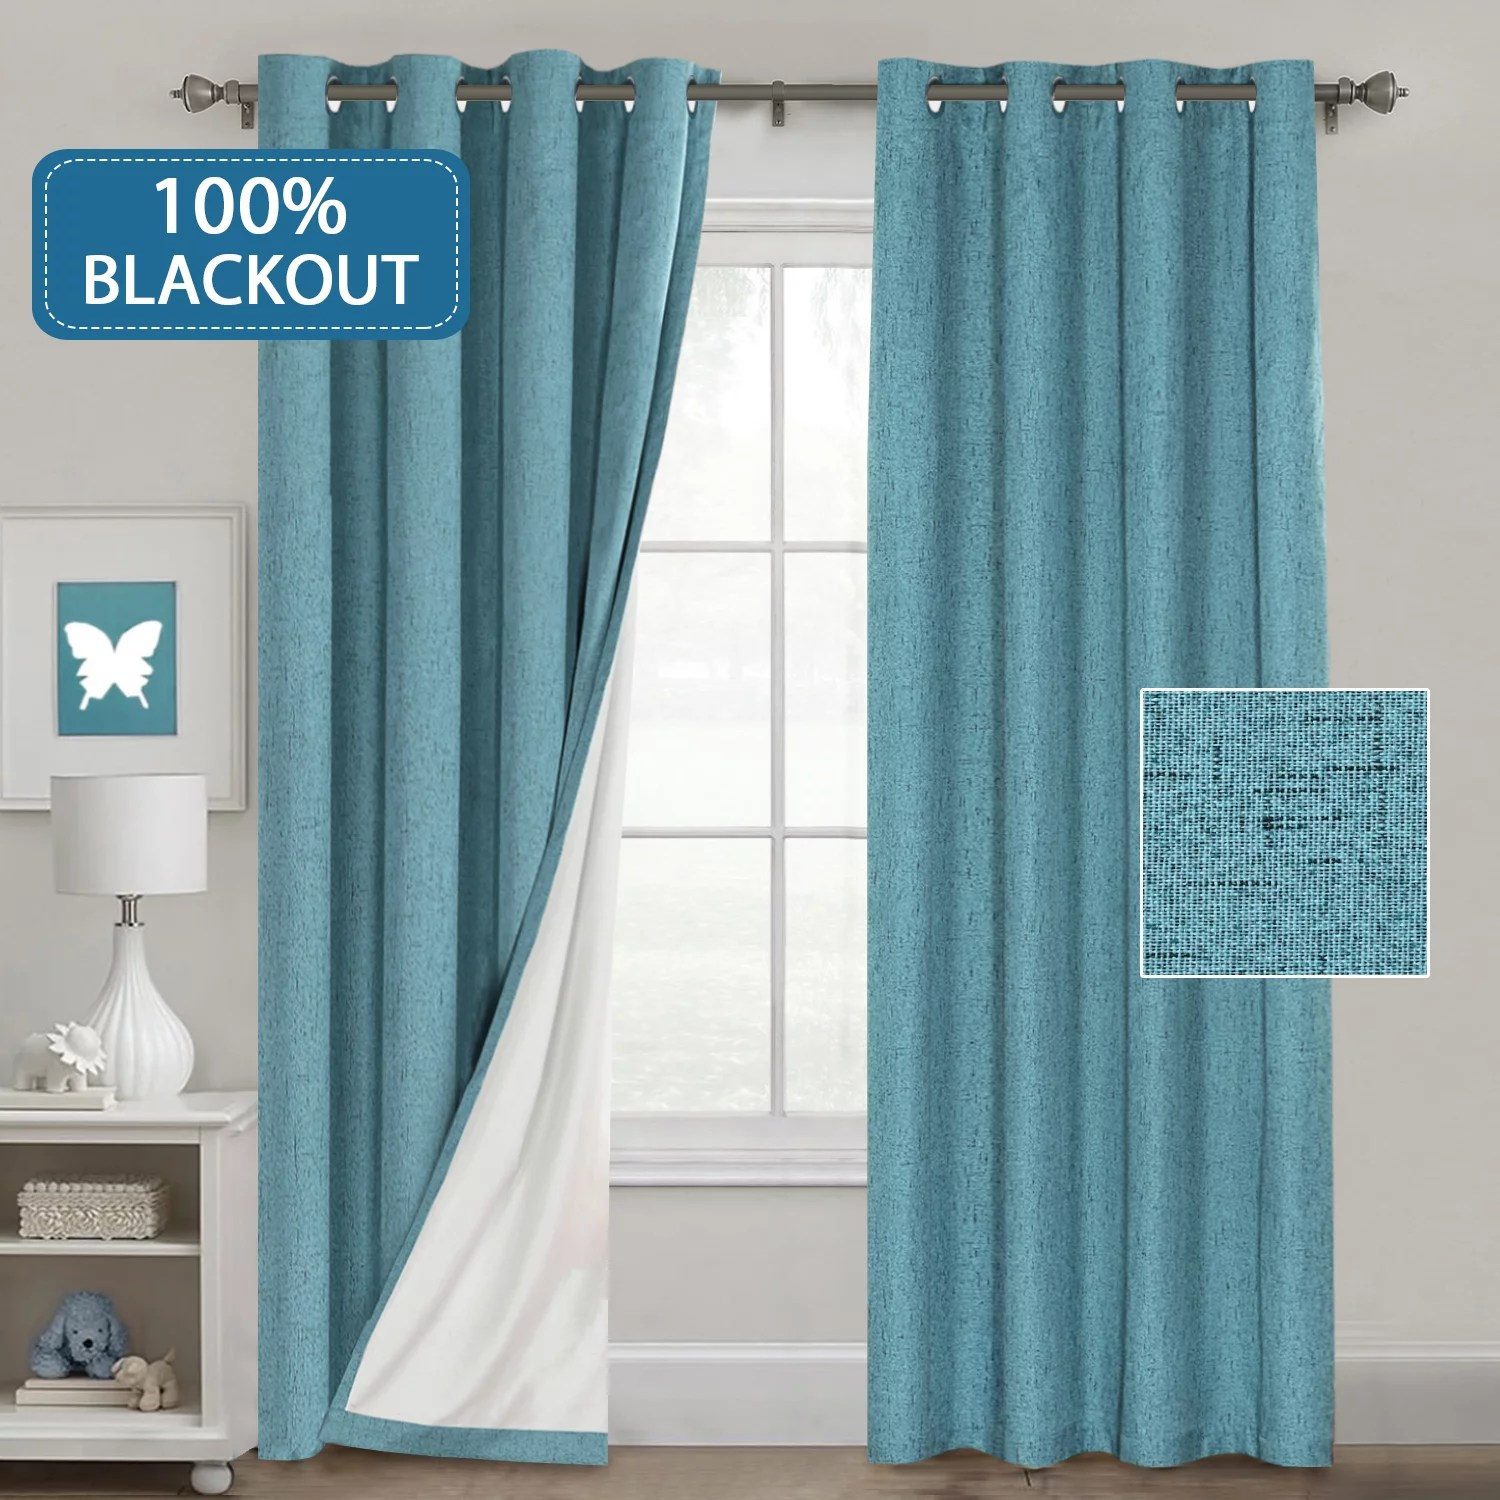 Bedroom Curtains Room Darkening Waterproof 100 Blackout Curtains For Bedroom Linen Look